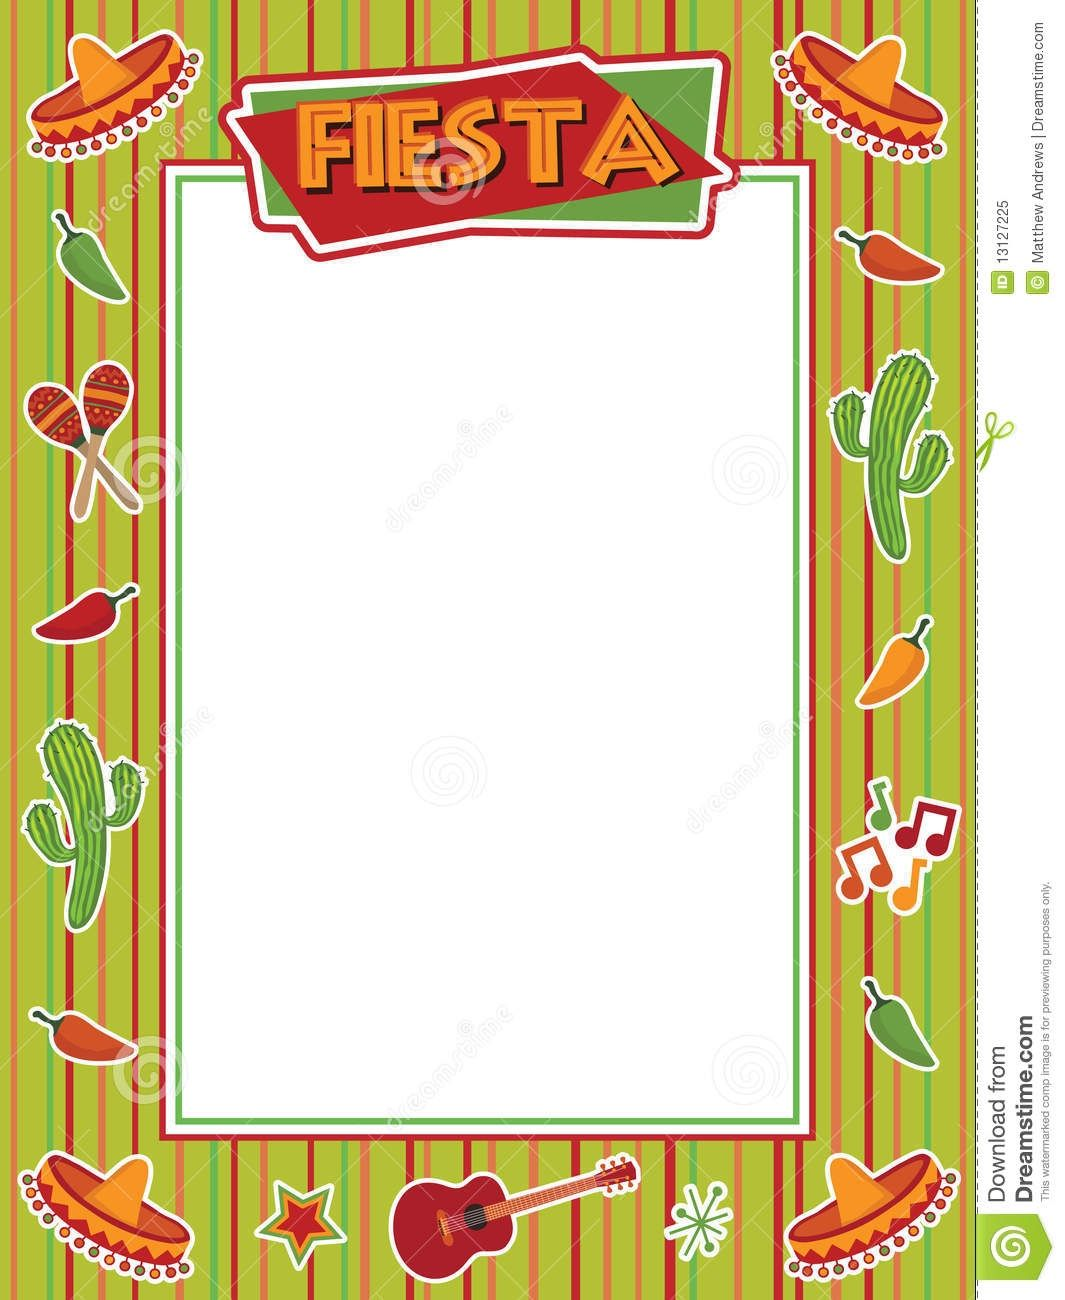 Mexican fiesta border clipart freeuse stock Pin by Kent Reising on irma | Food clipart, Food border ... freeuse stock